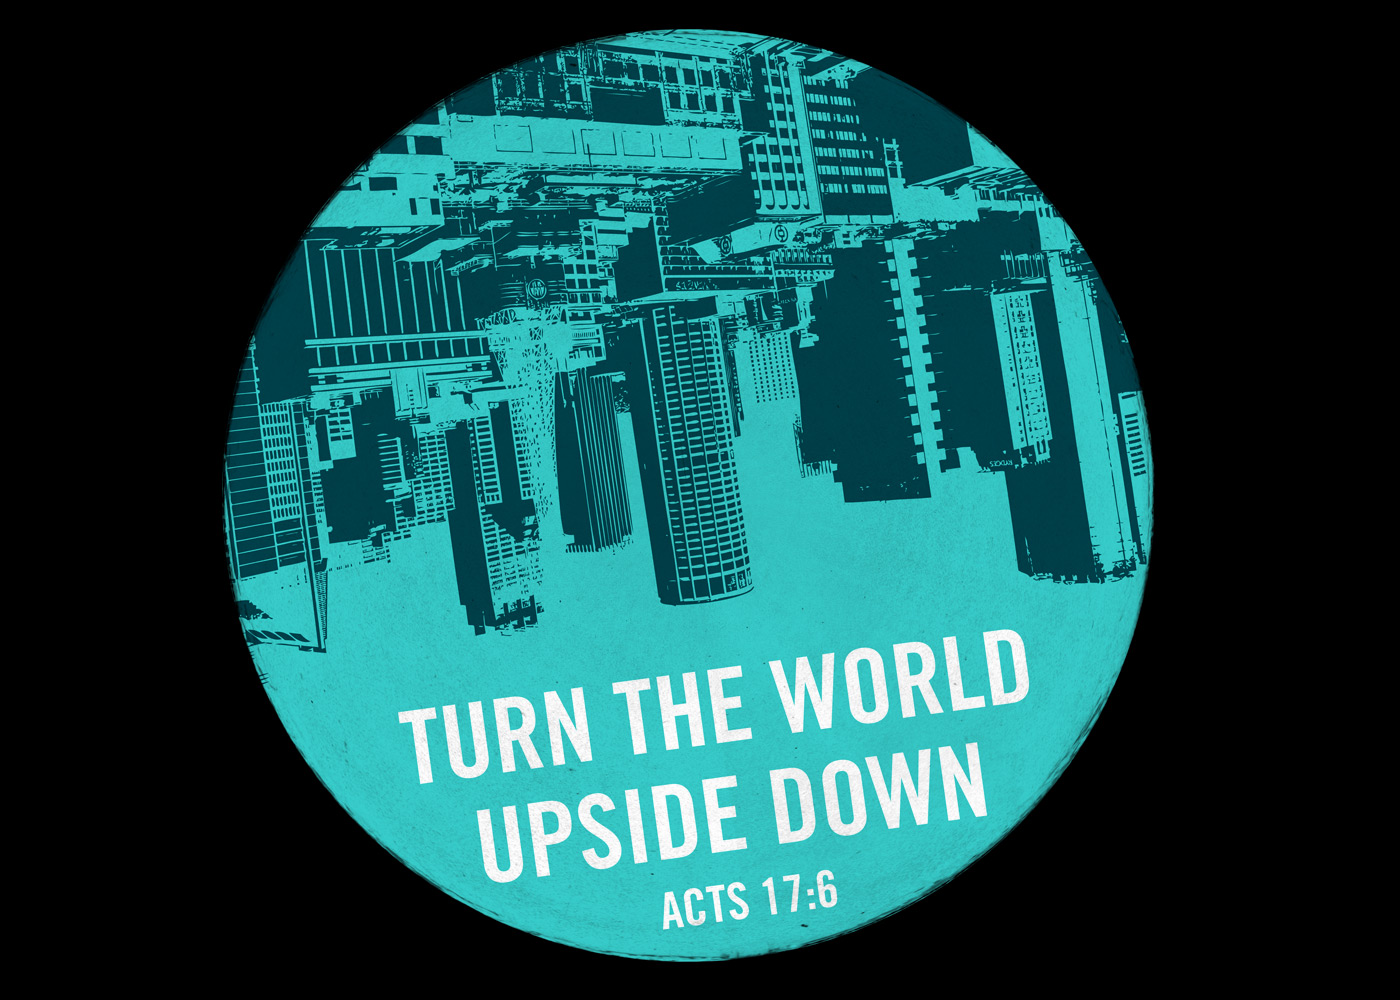 Turn the world upside down for God Christian Wallpaper 1400x1000 jpg 1182